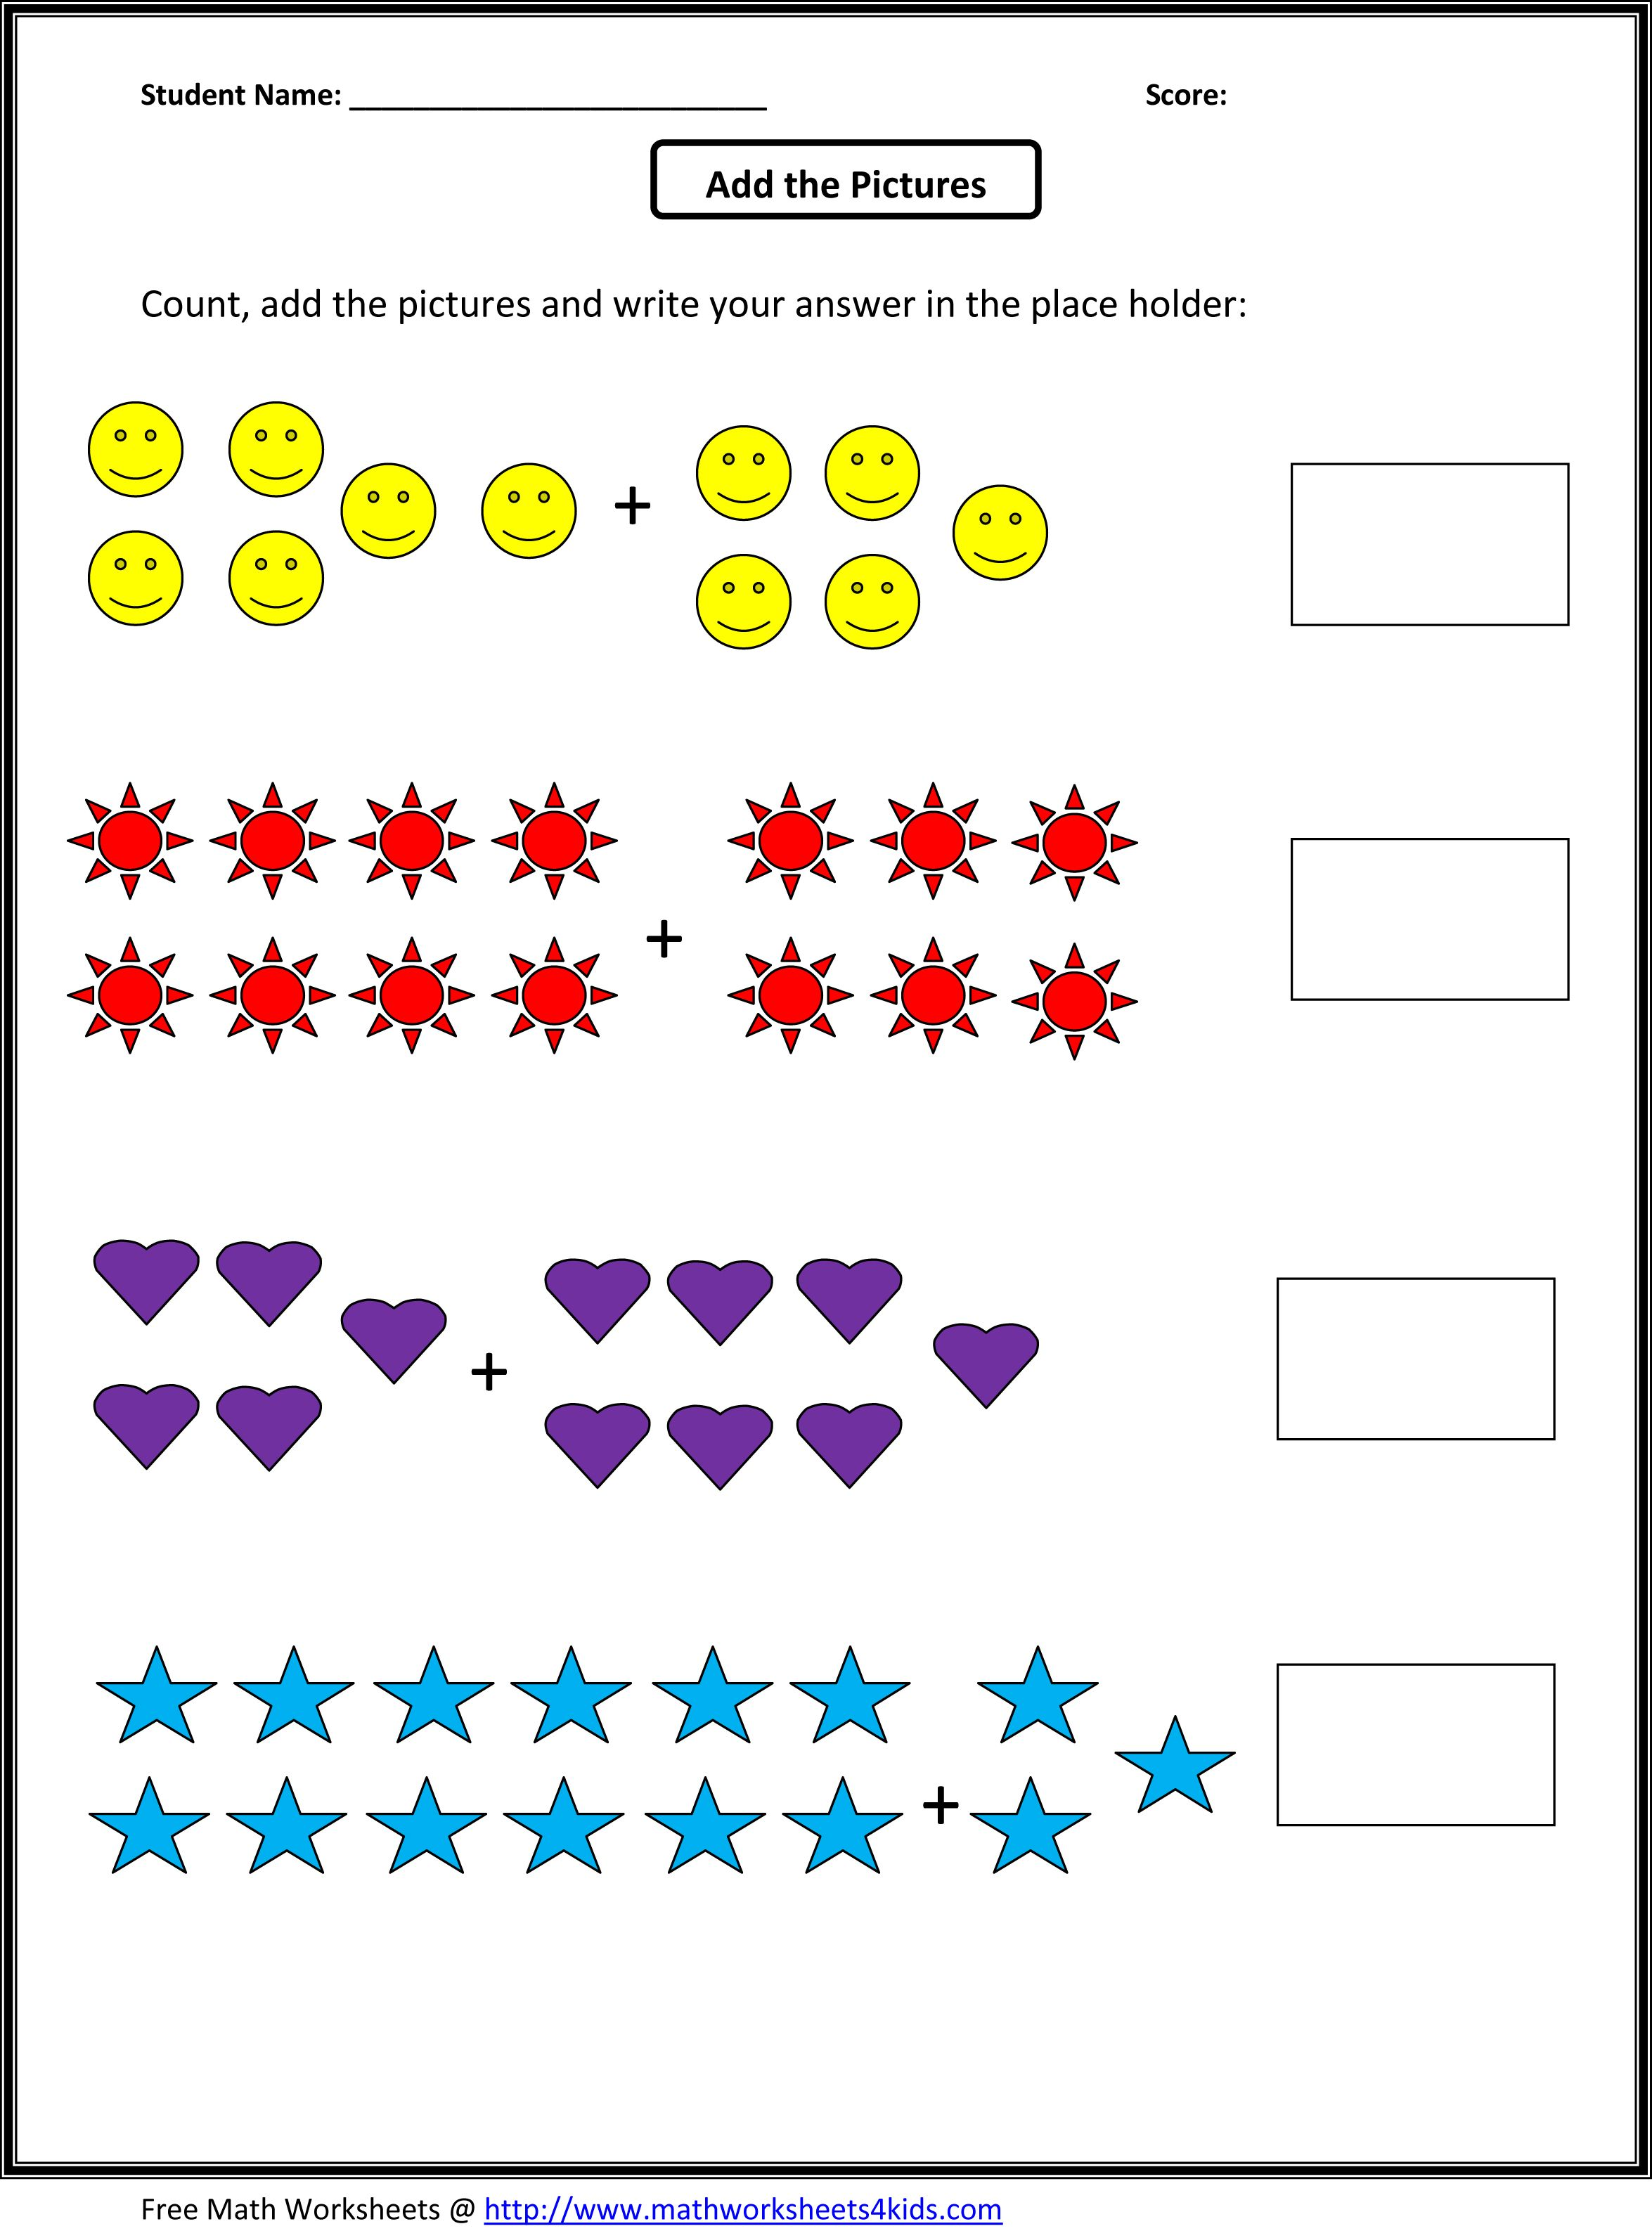 Worksheet Printable 1st Grade Math Worksheets printable grade 1 math worksheets coffemix for delwfg com